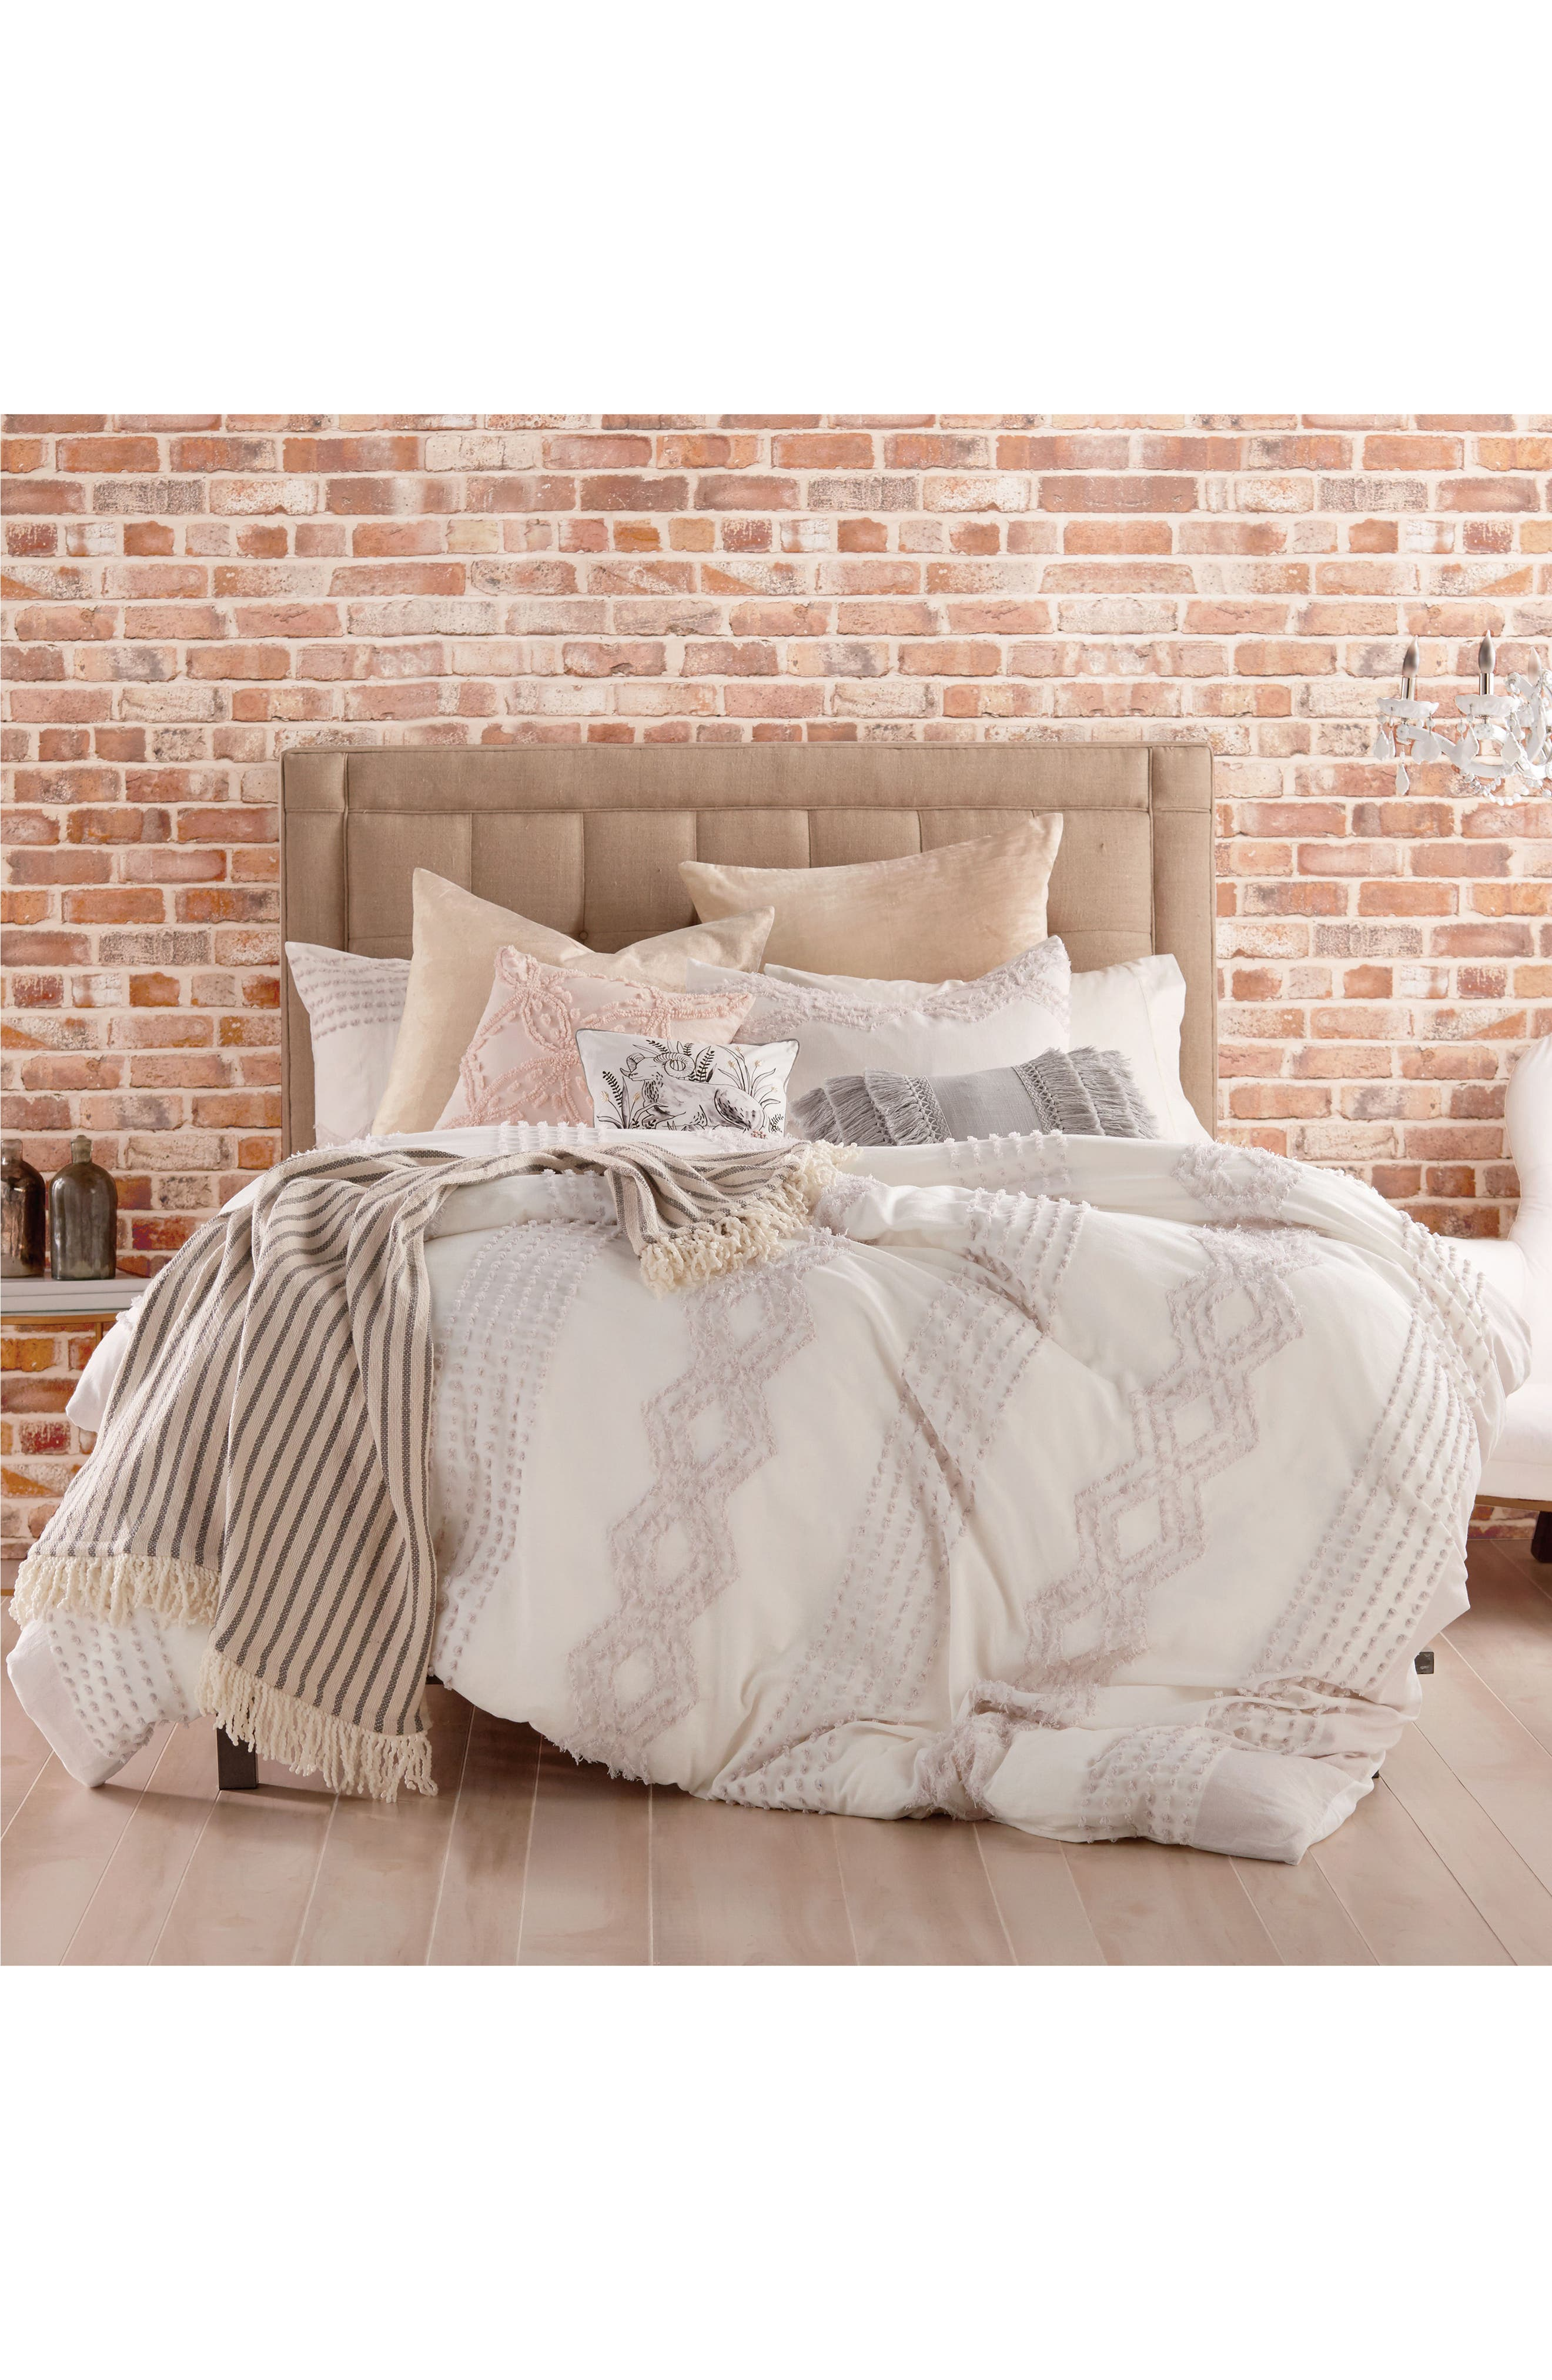 Alternate Image 1 Selected - Peri Home Cut Geo Chenille Comforter & Sham Set